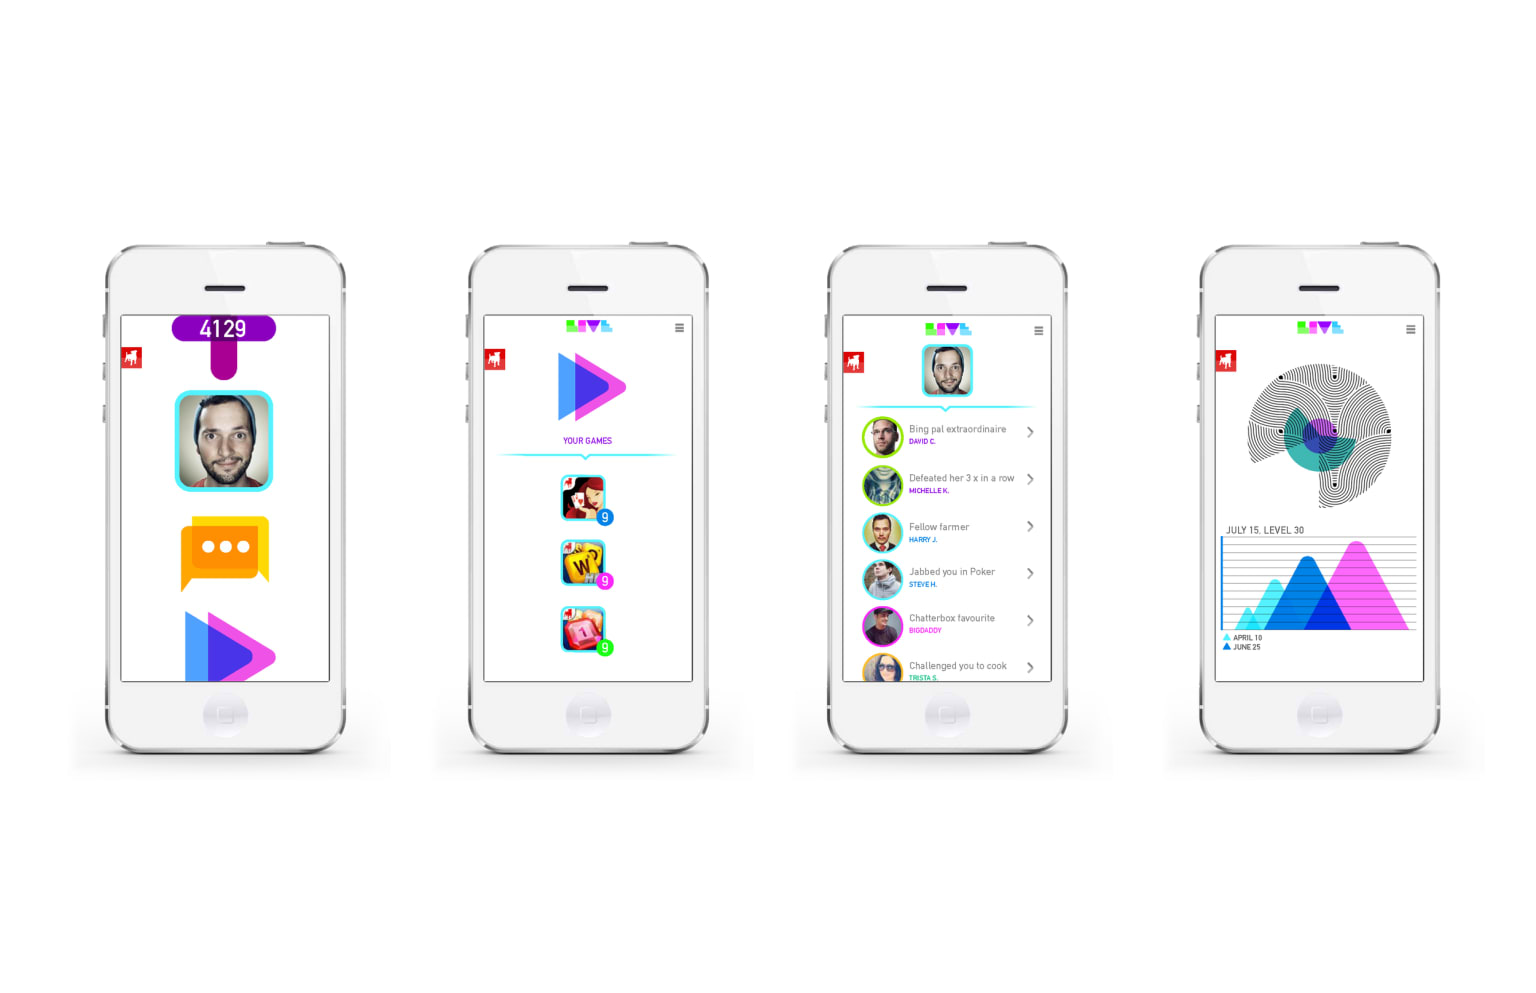 ZYNGA LIVE : INVITING USER EXPERIENCE AND BRAND TO PLAY TOGETHER